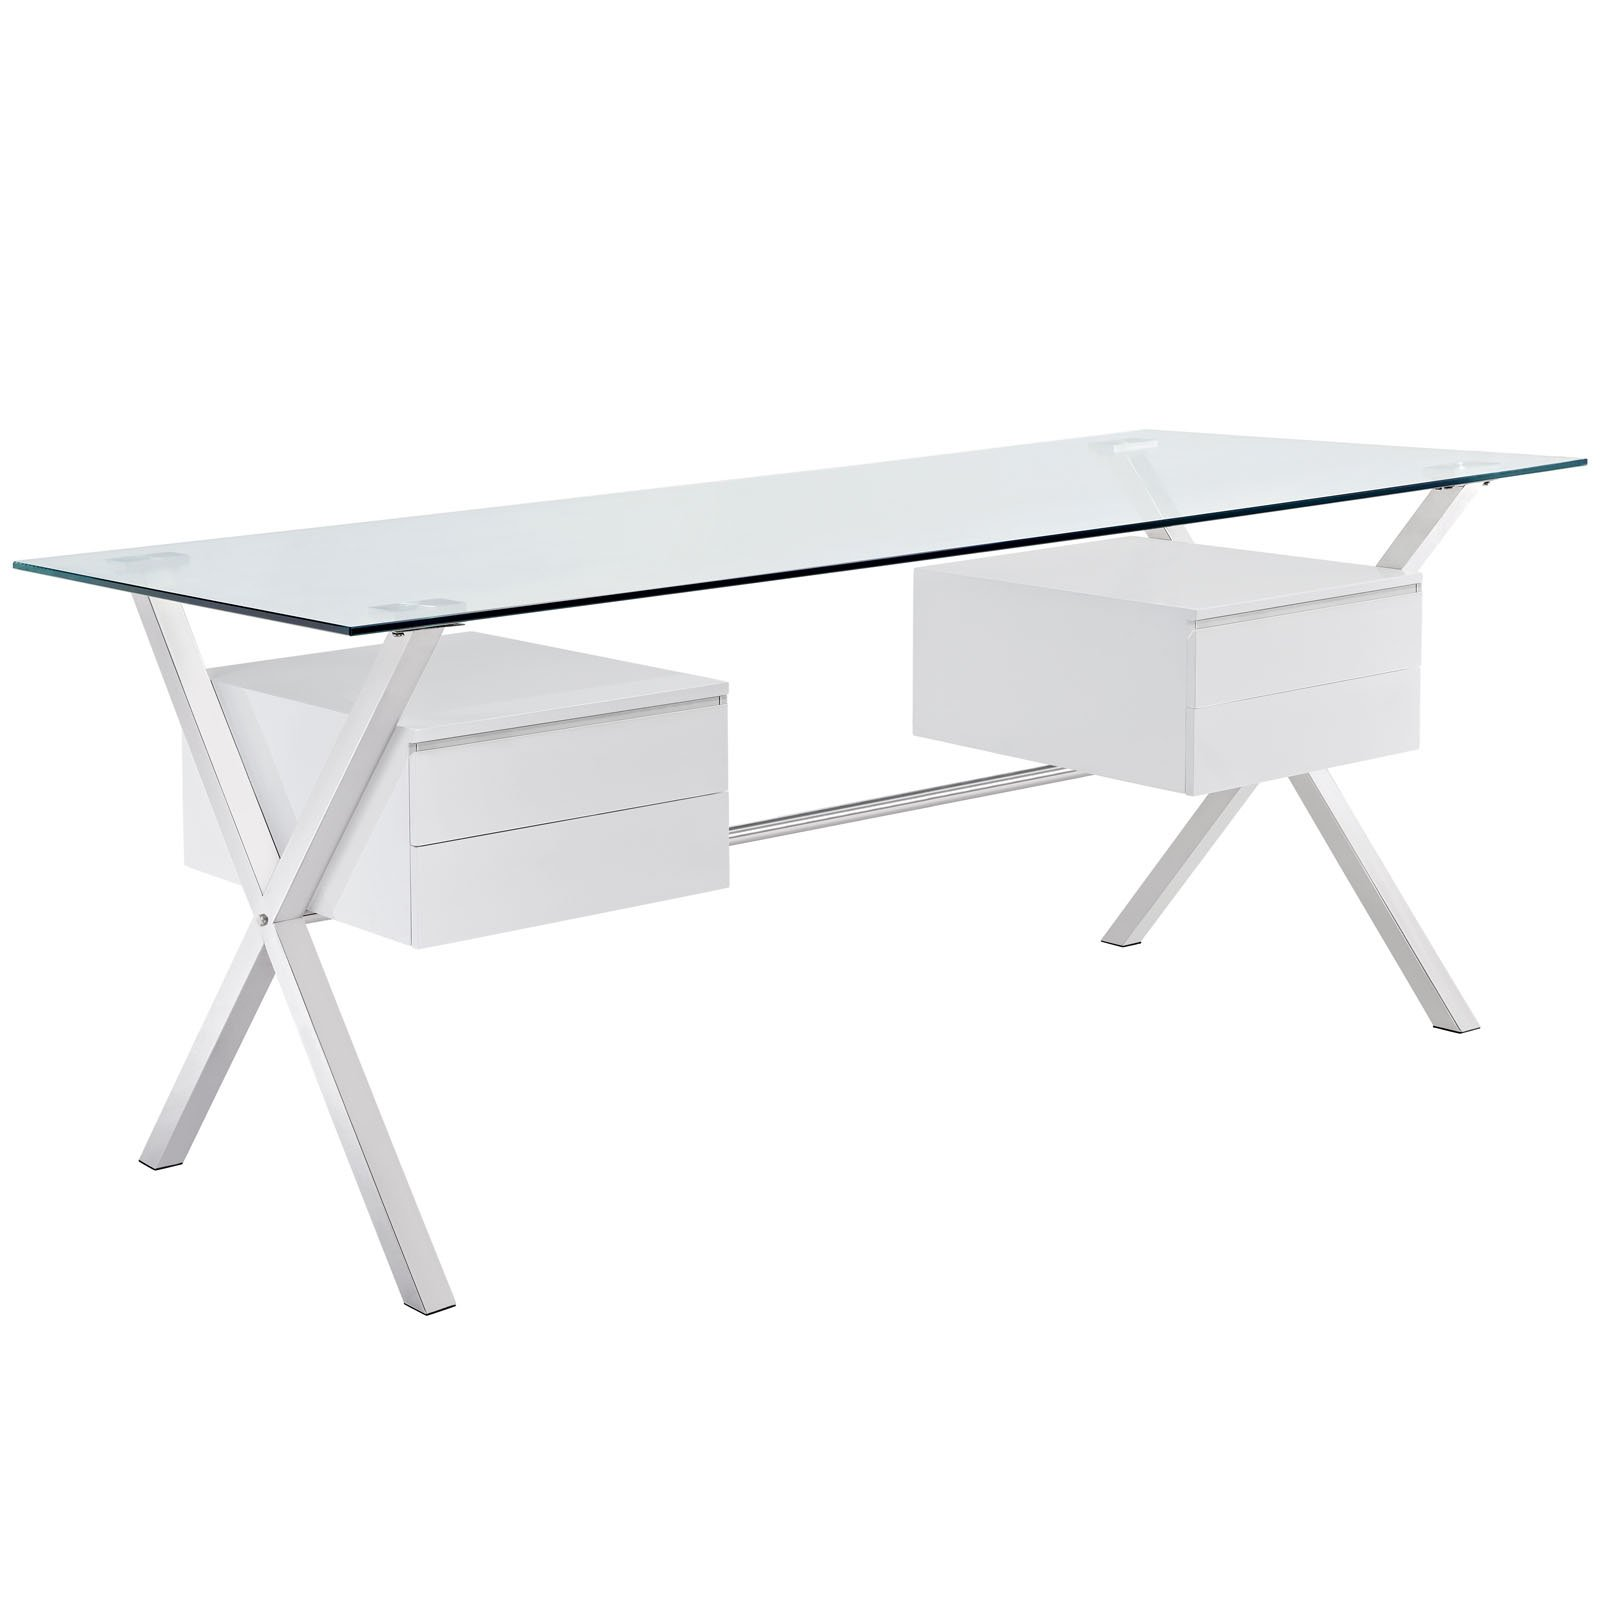 Modway Abeyance Contemporary Modern Glass-Top Office Desk in White by Modway